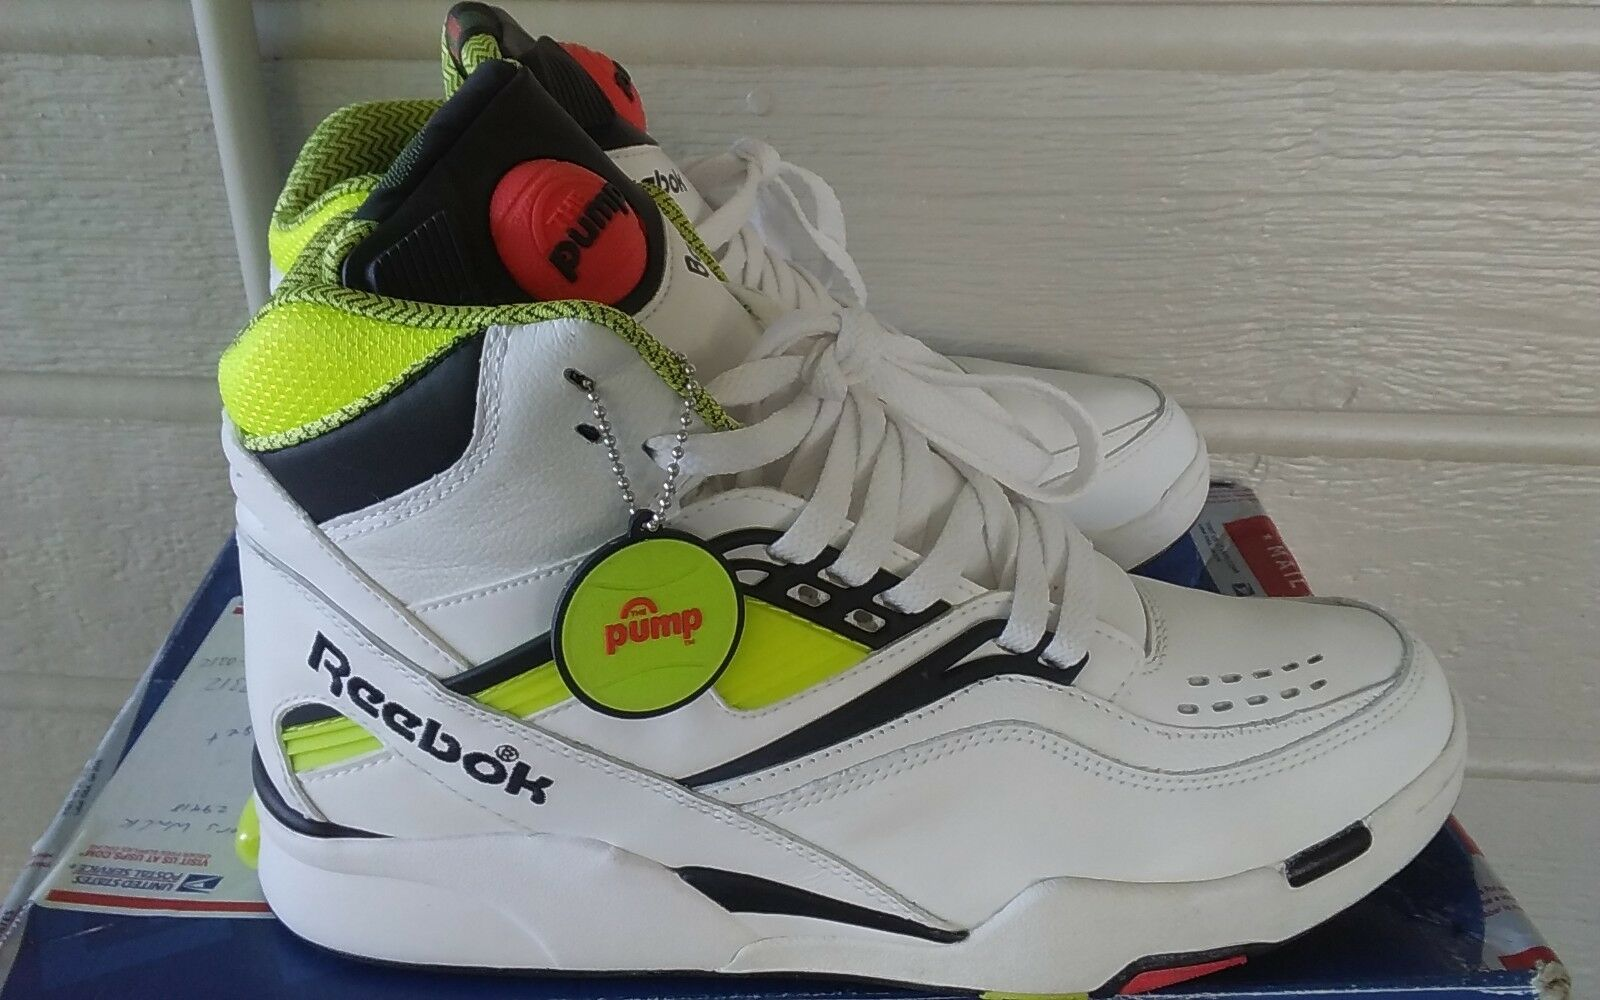 Reebok Twilight Zone The Pump OG Neon  Dominique Wilkins  sz.9 VNDS